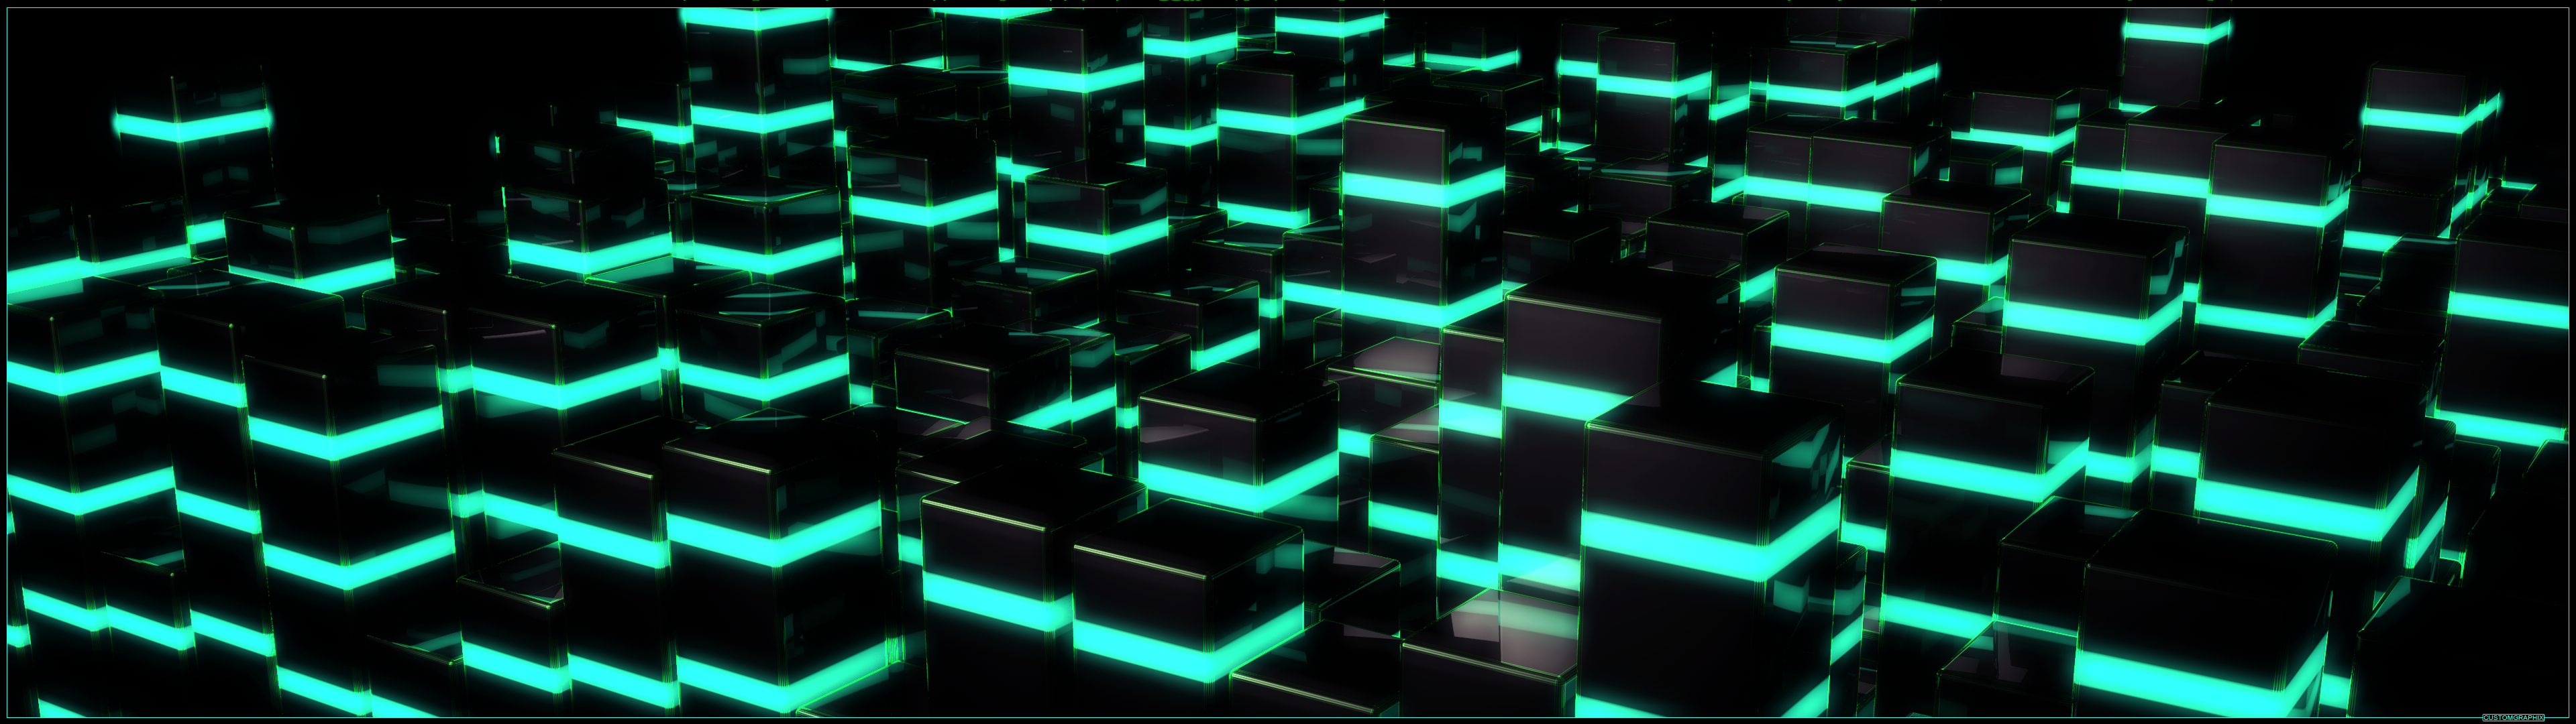 InterfaceLIFT: 3840x1080 Wallpaper sorted by Downloads